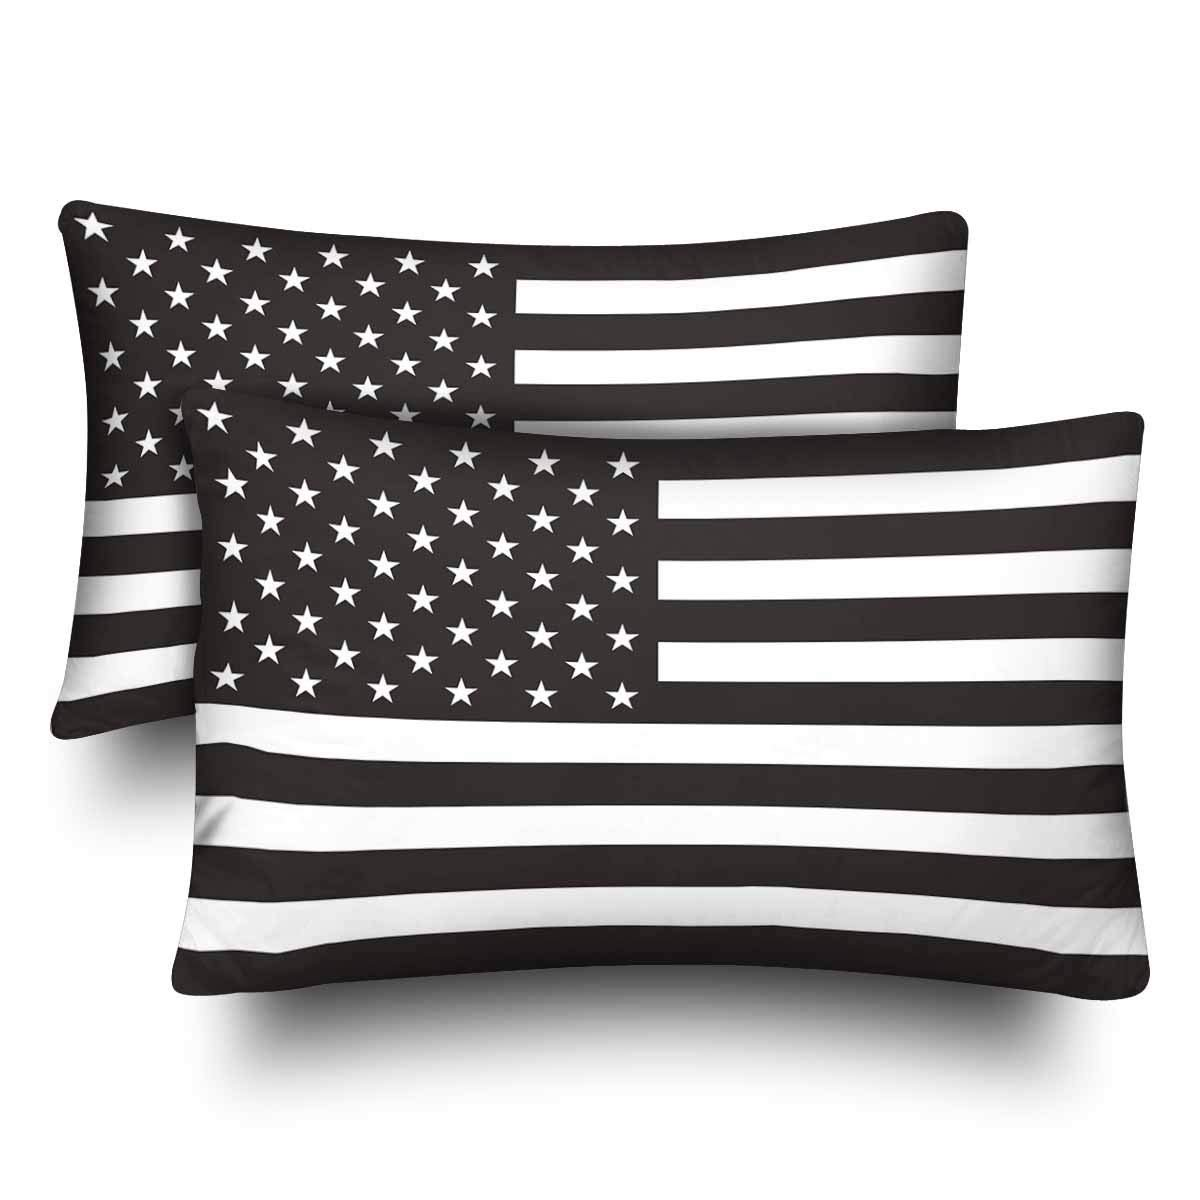 GCKG Black and White UAS American Flag Pillow Cases Pillowcase 20x30 inches  Set of 2